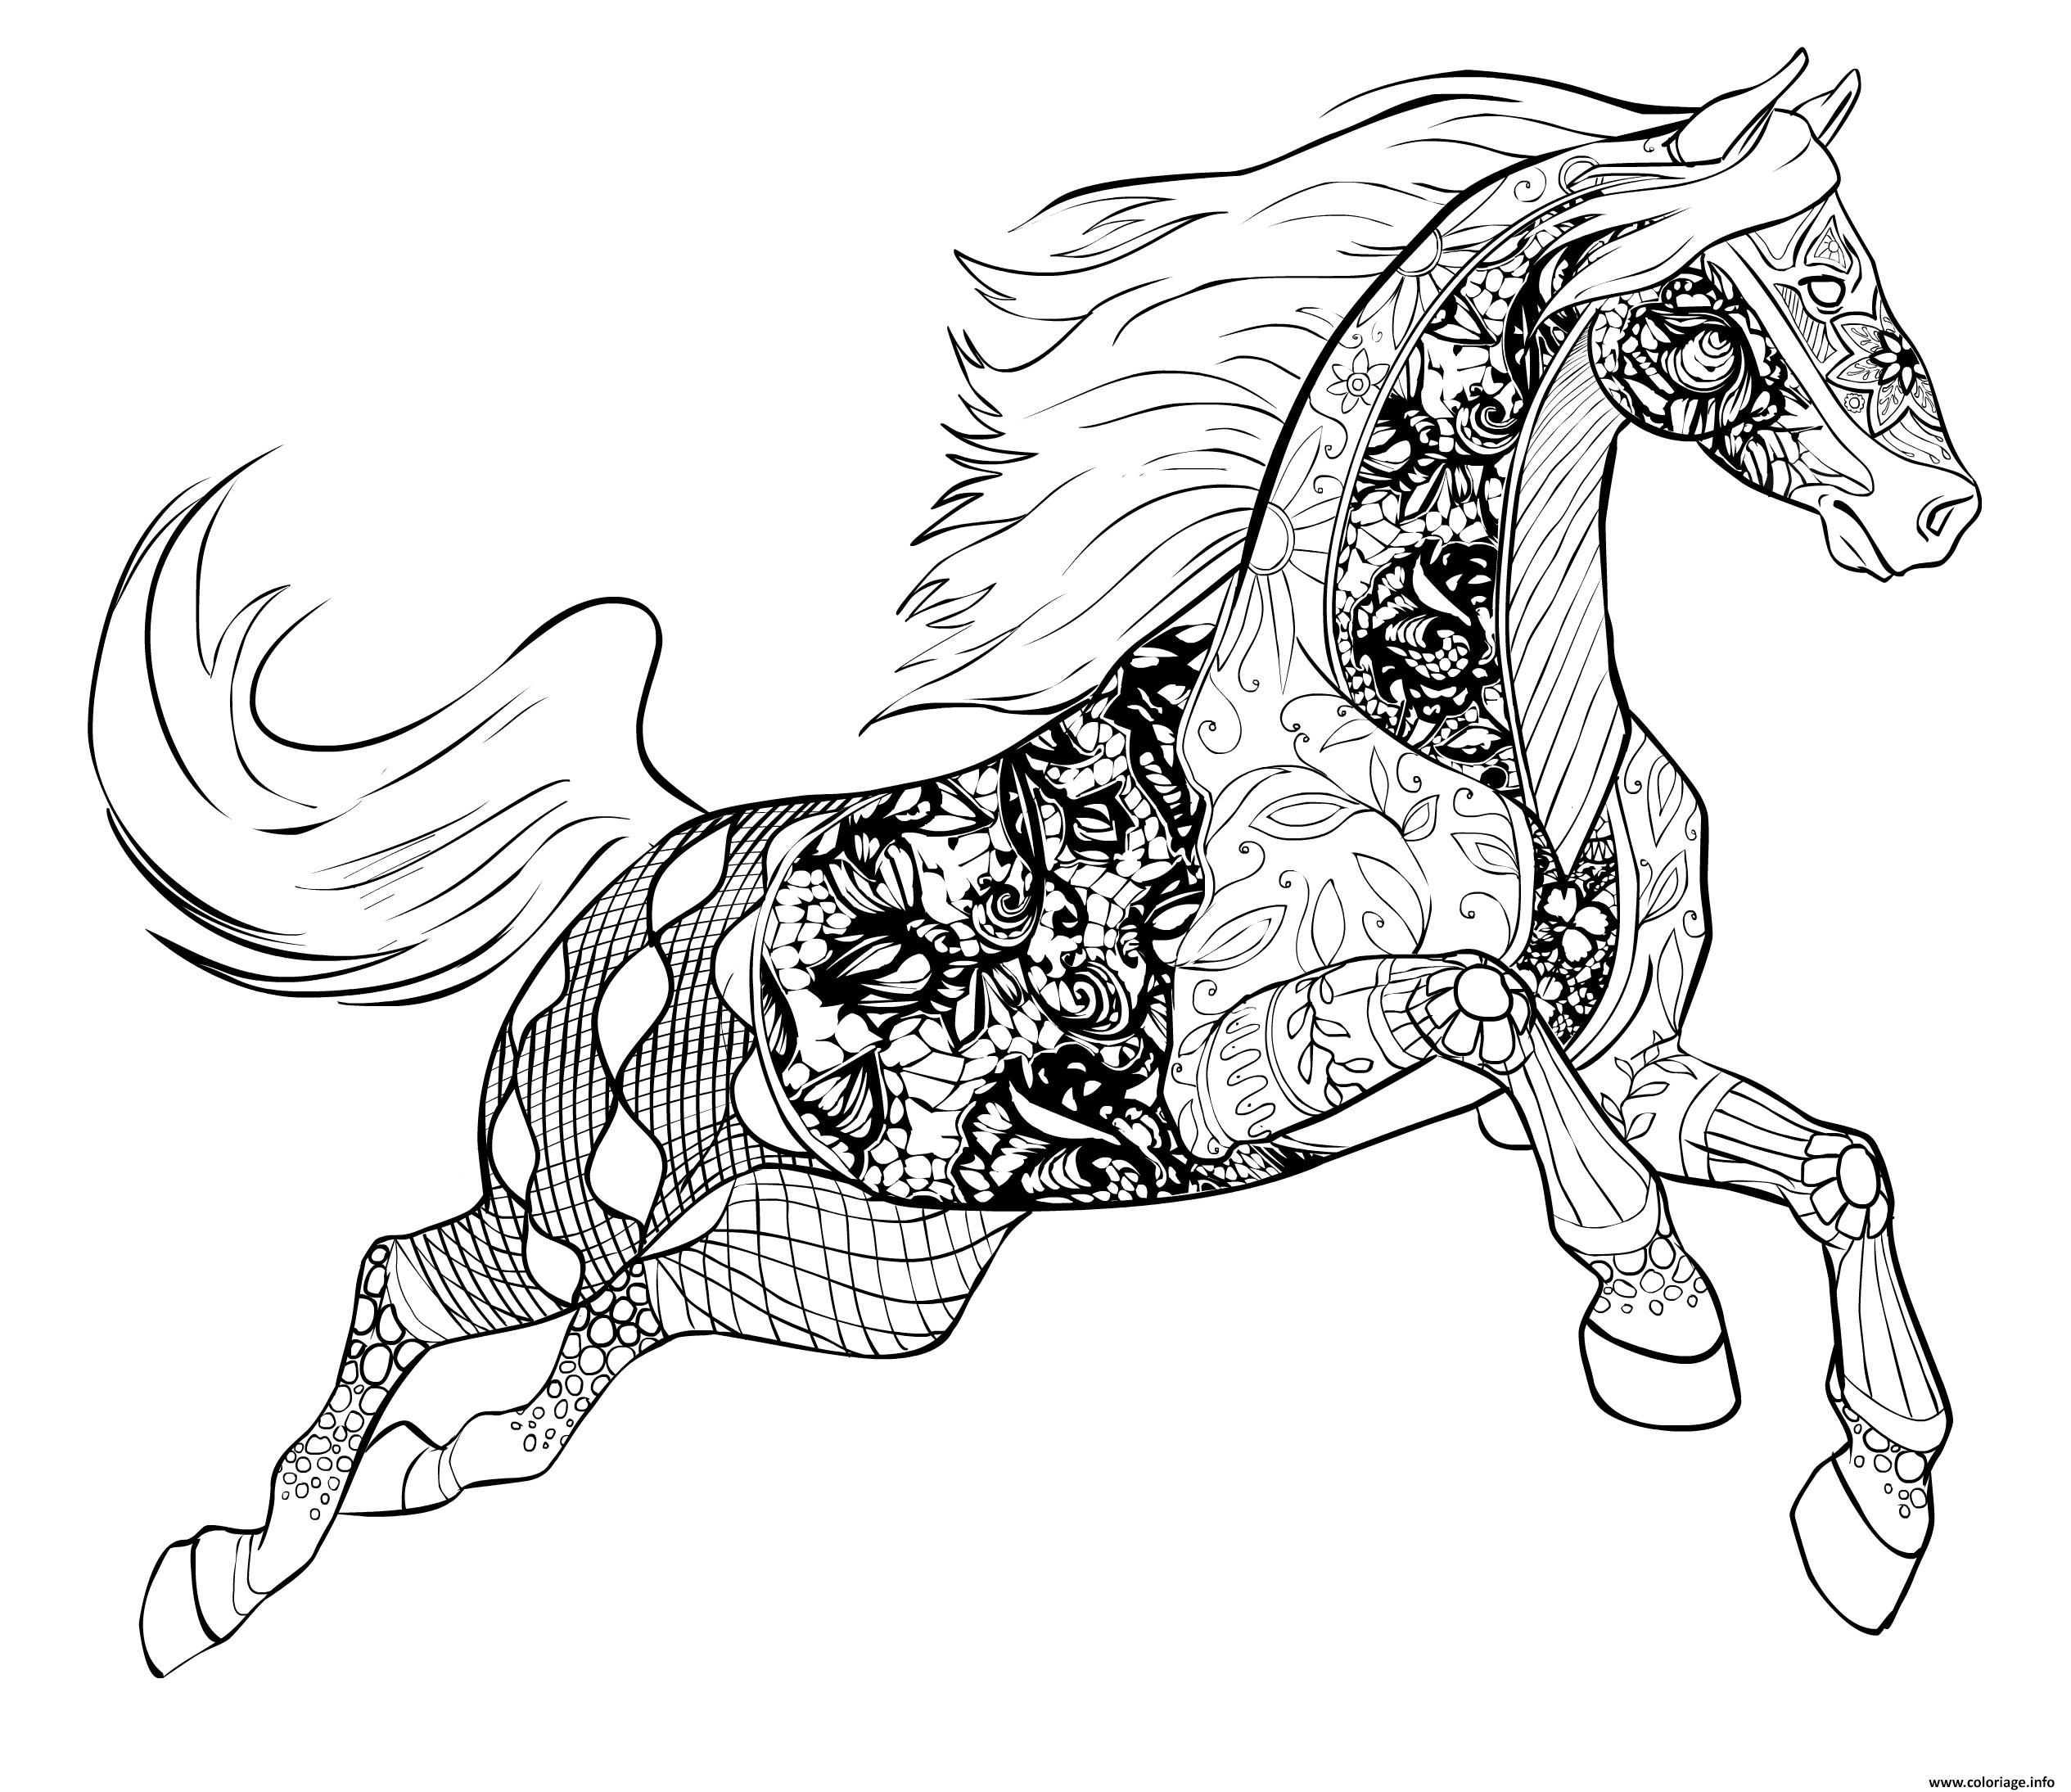 Coloriage Cheval Zen.Coloriage Cheval Adulte Par Selah Works Jecolorie Com